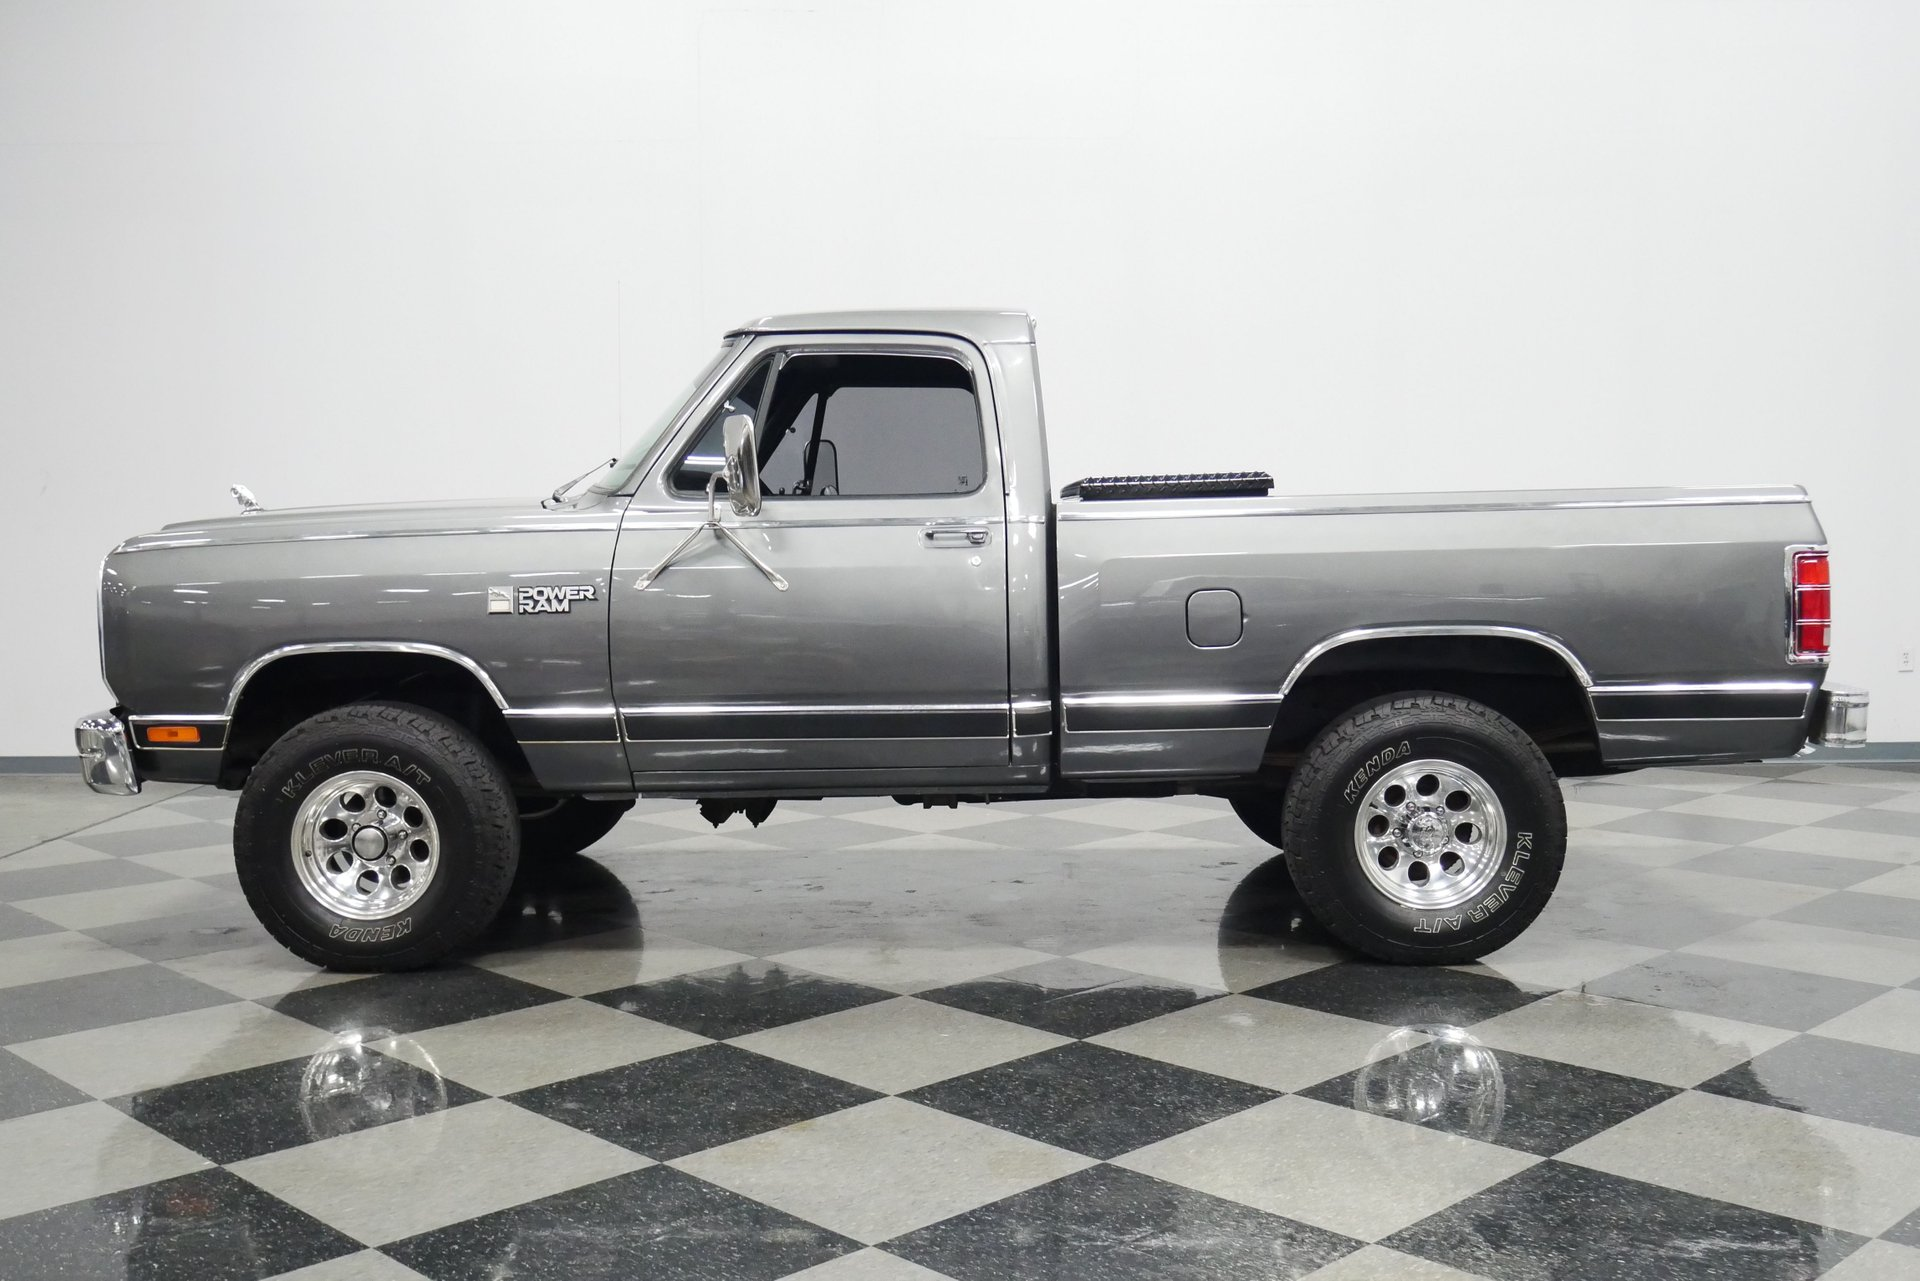 1987 dodge power ram 150